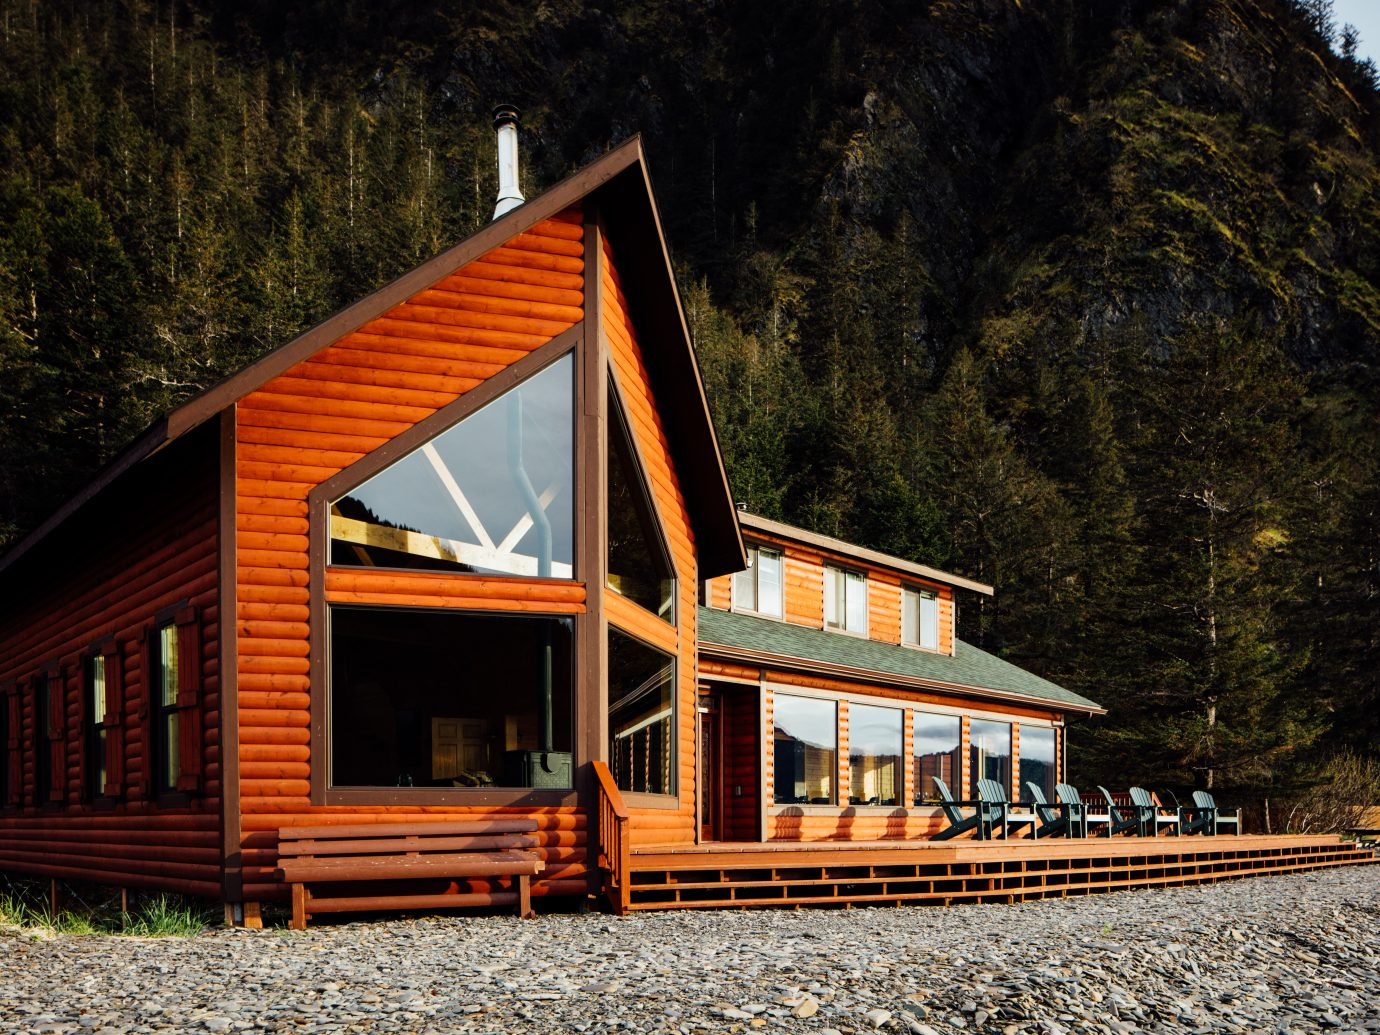 Guest Lodge at Kenai Fjords Wilderness Lodge, Alaska